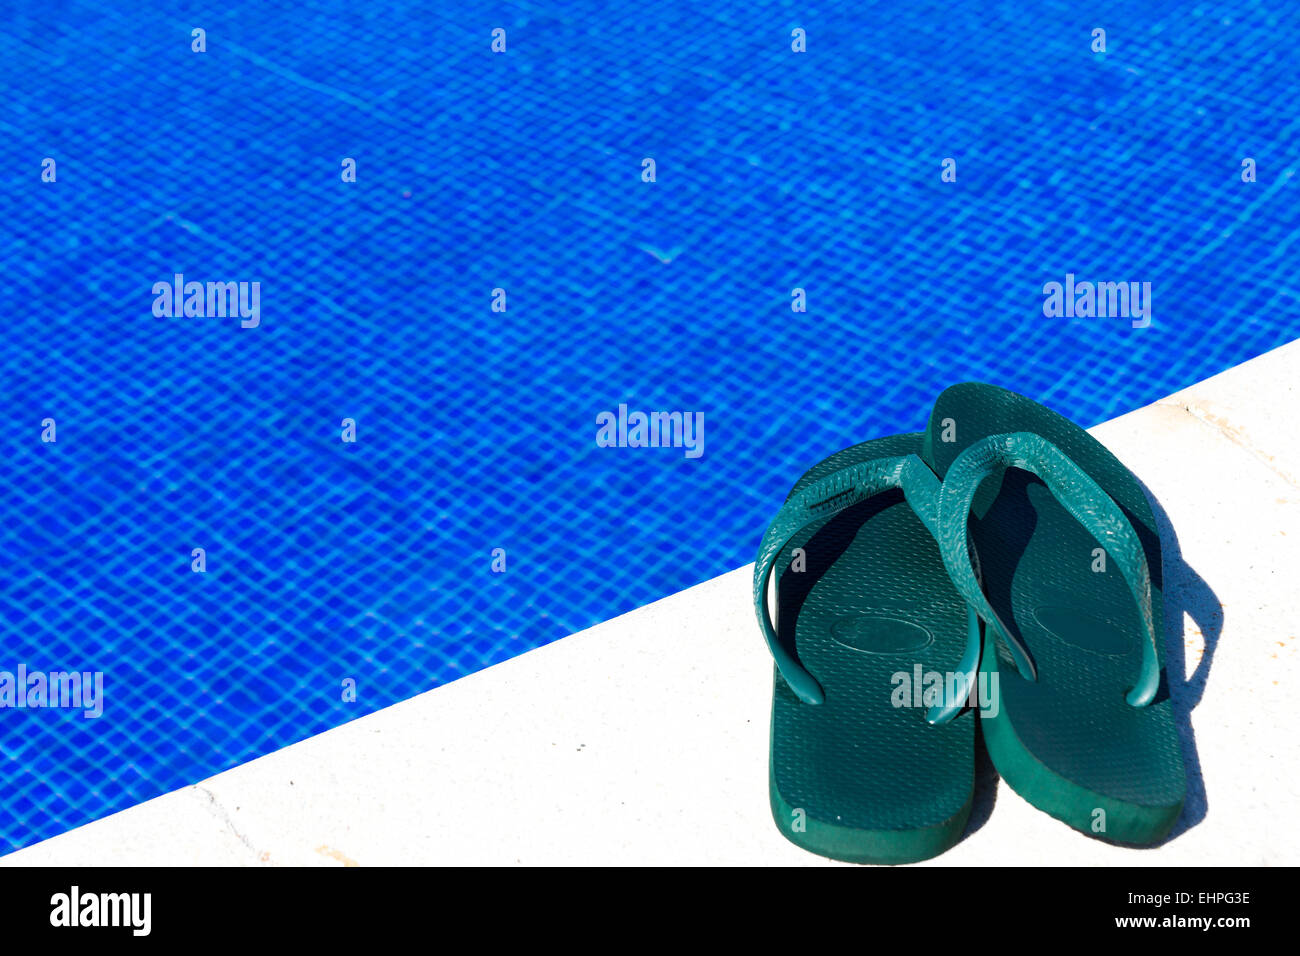 Flip-flops by the swimming pool - Stock Image